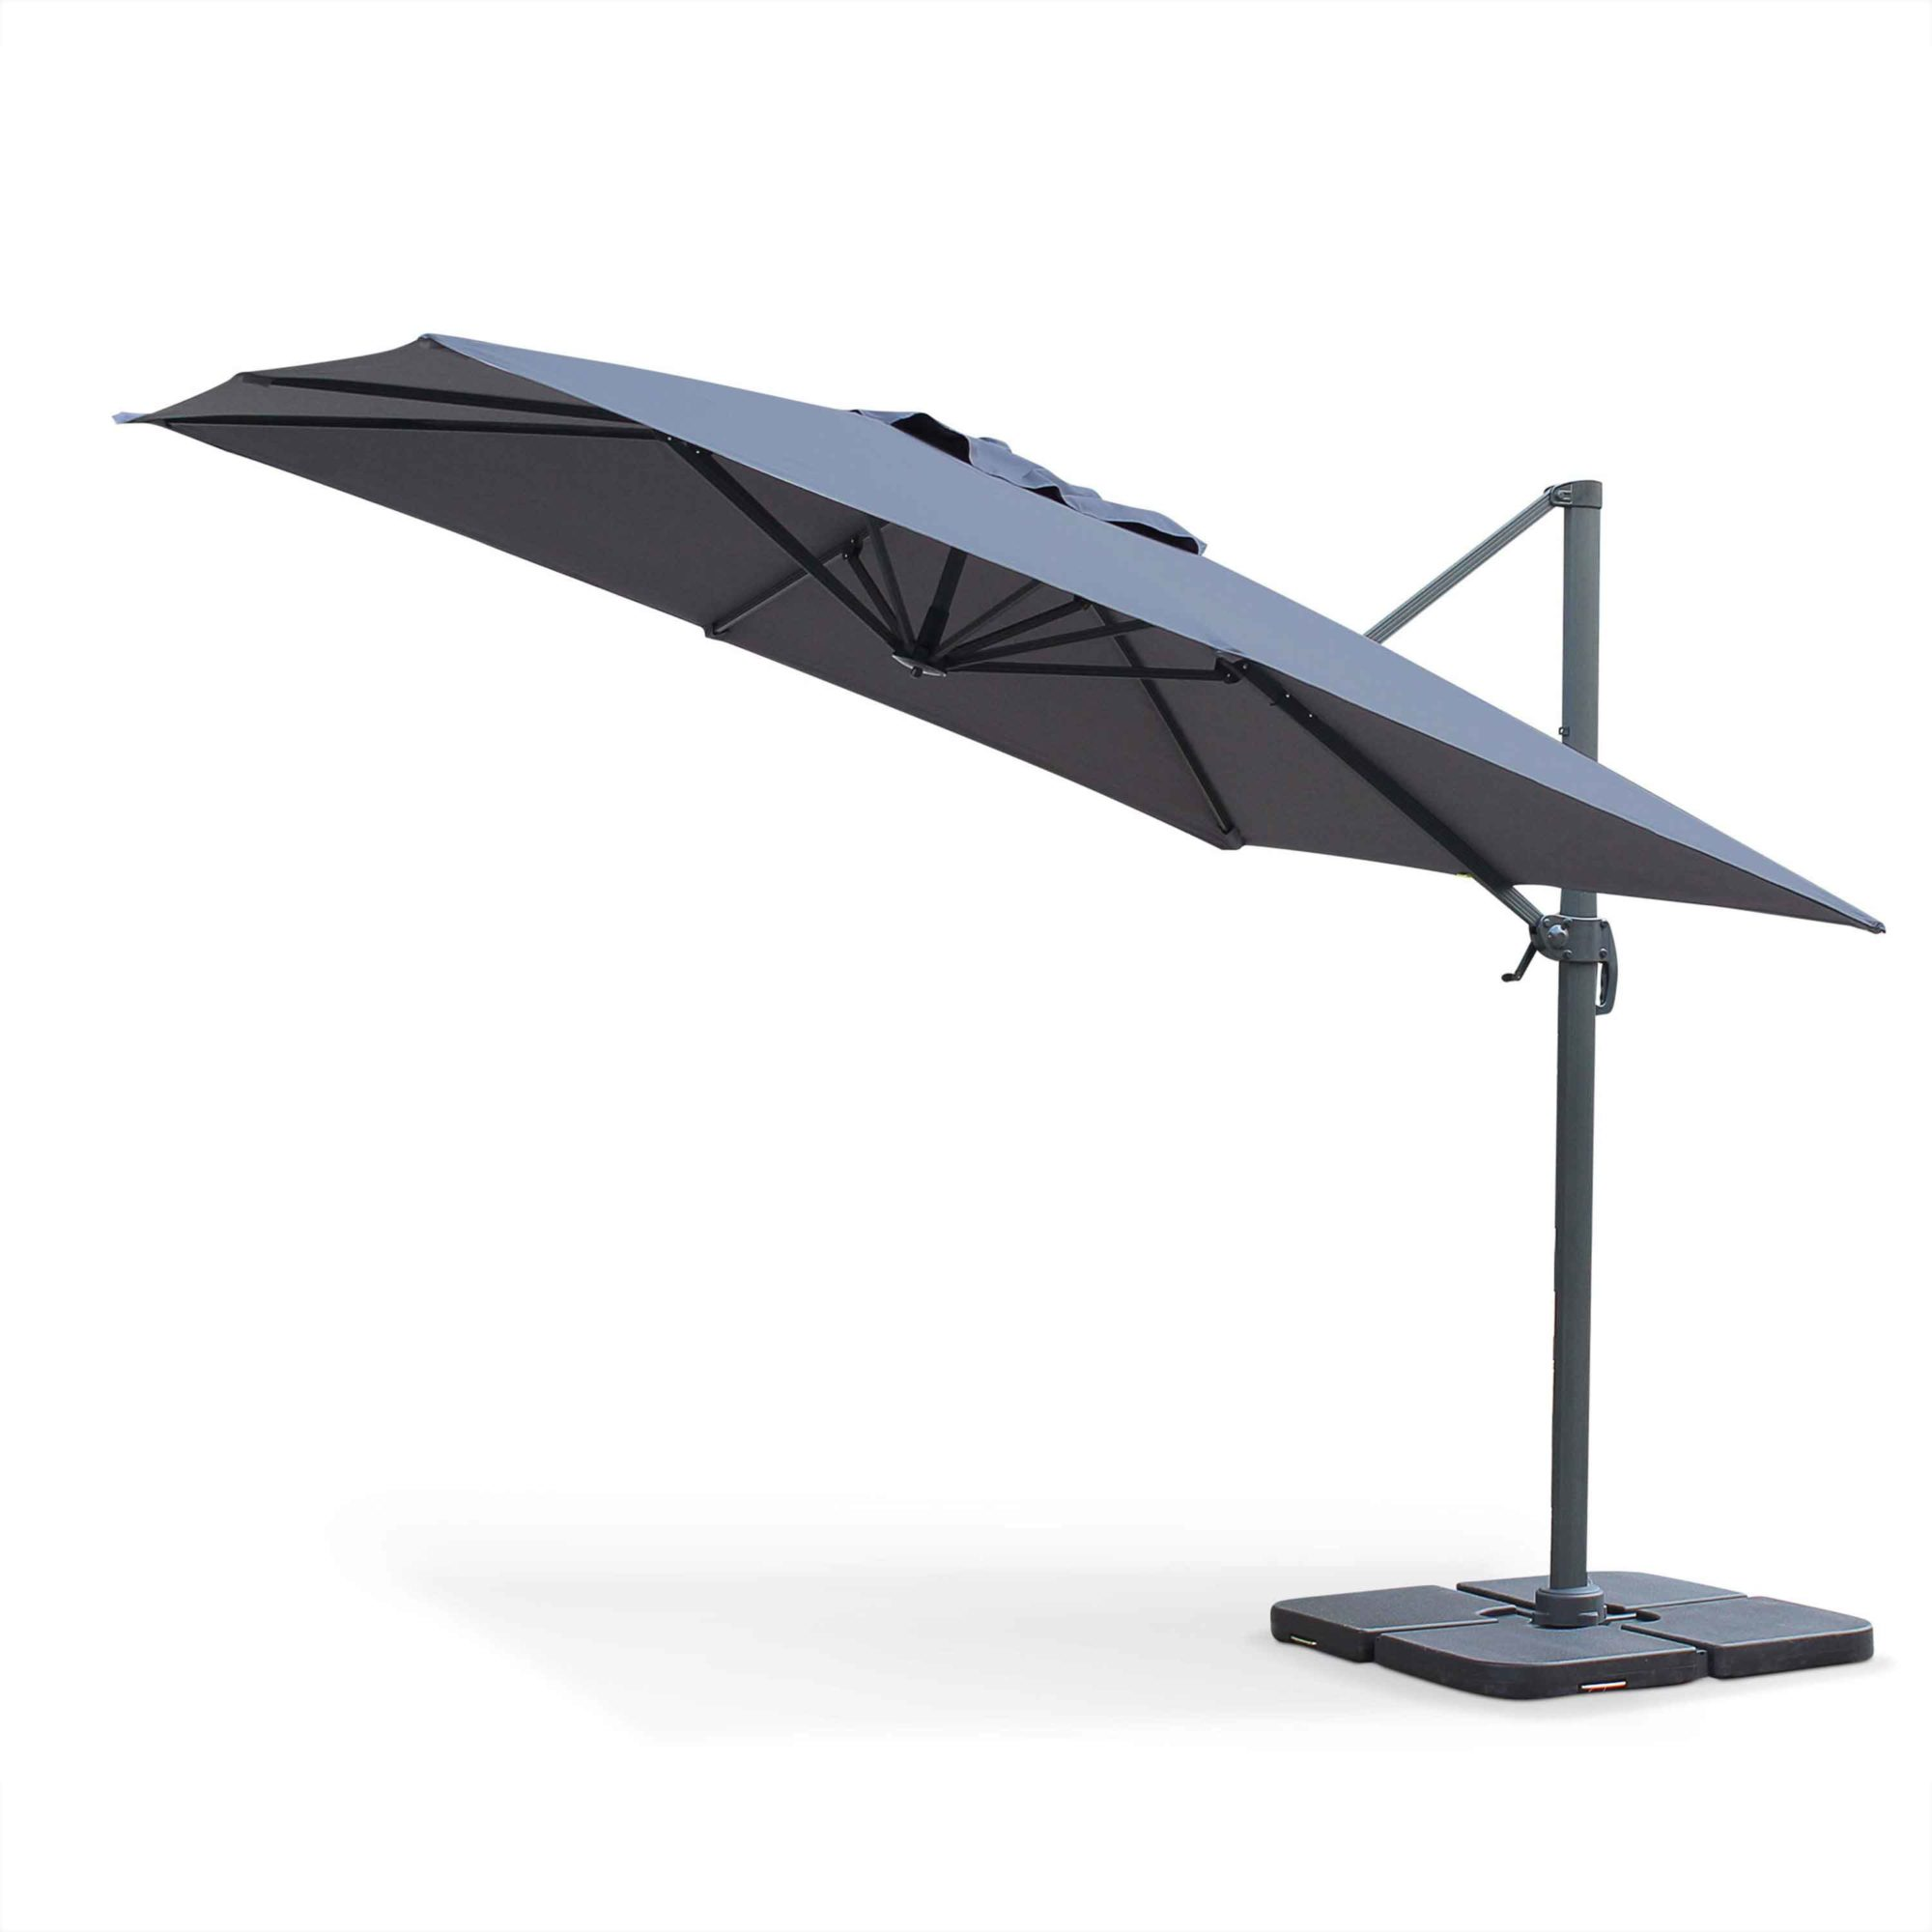 Cantilever outdoor umbrella 3x3m aluminium grey